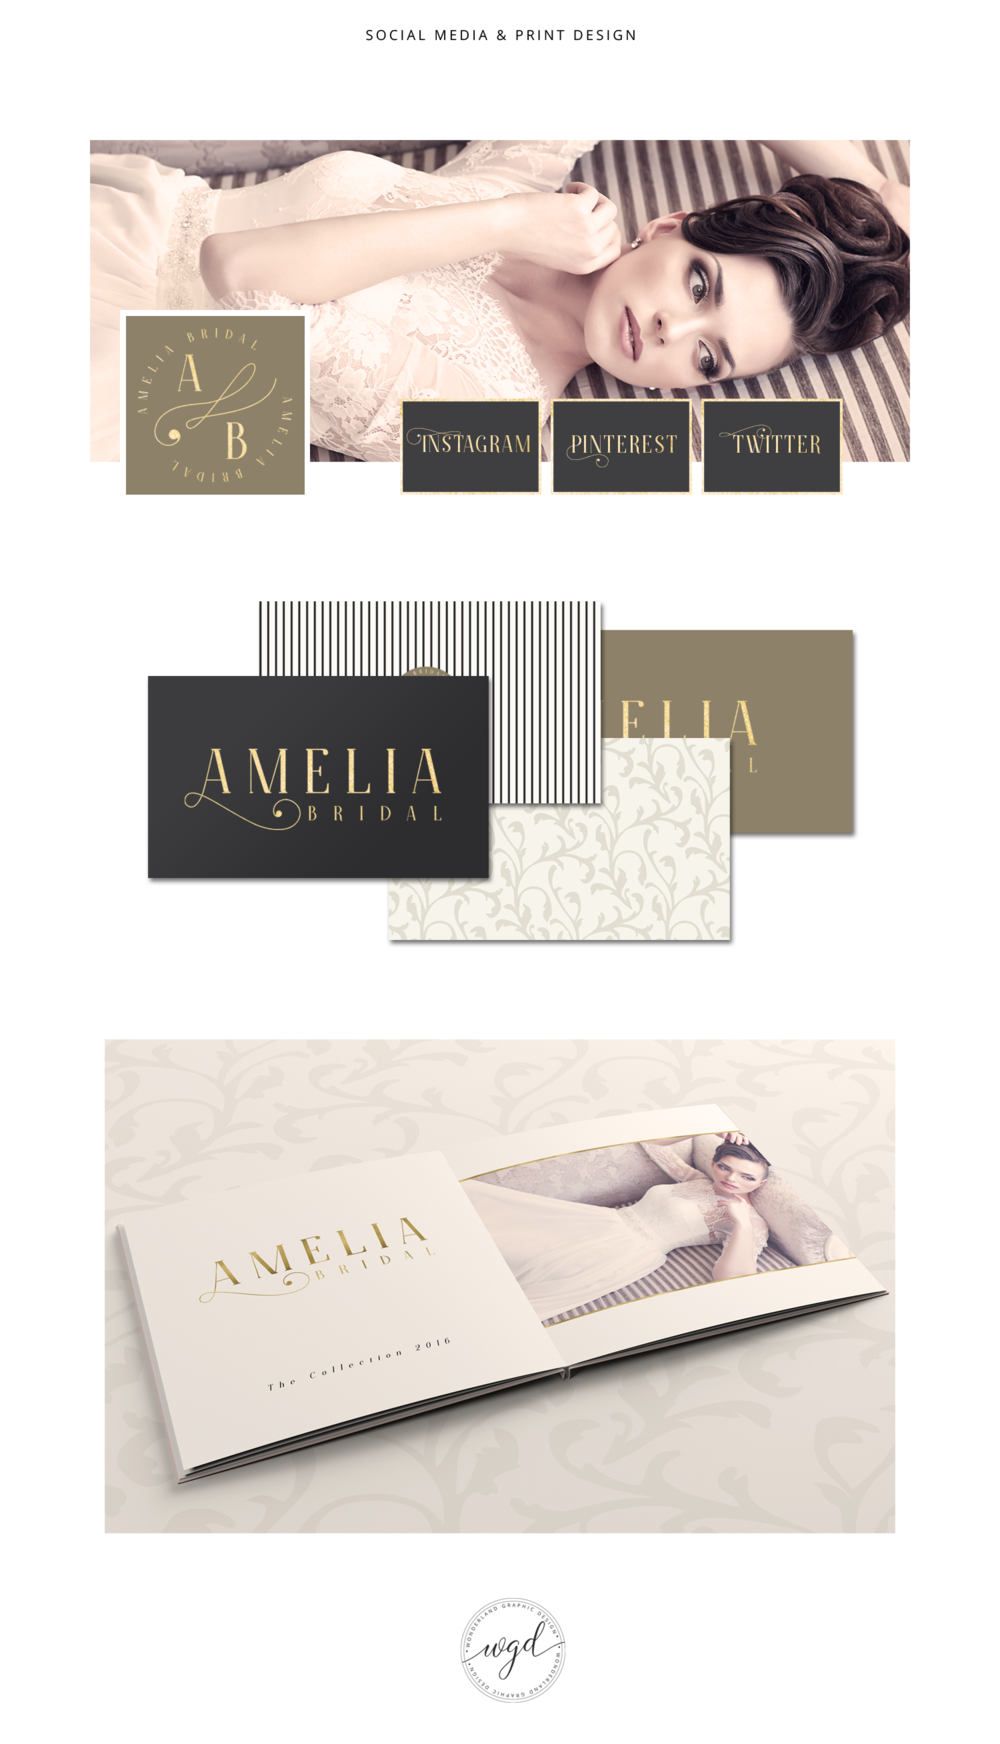 Social Media and Print Design for Amelia Bridal | If you require branding services for your wedding business, click through to find out more. Wonderland Graphic Design - Styling your way to a better business!